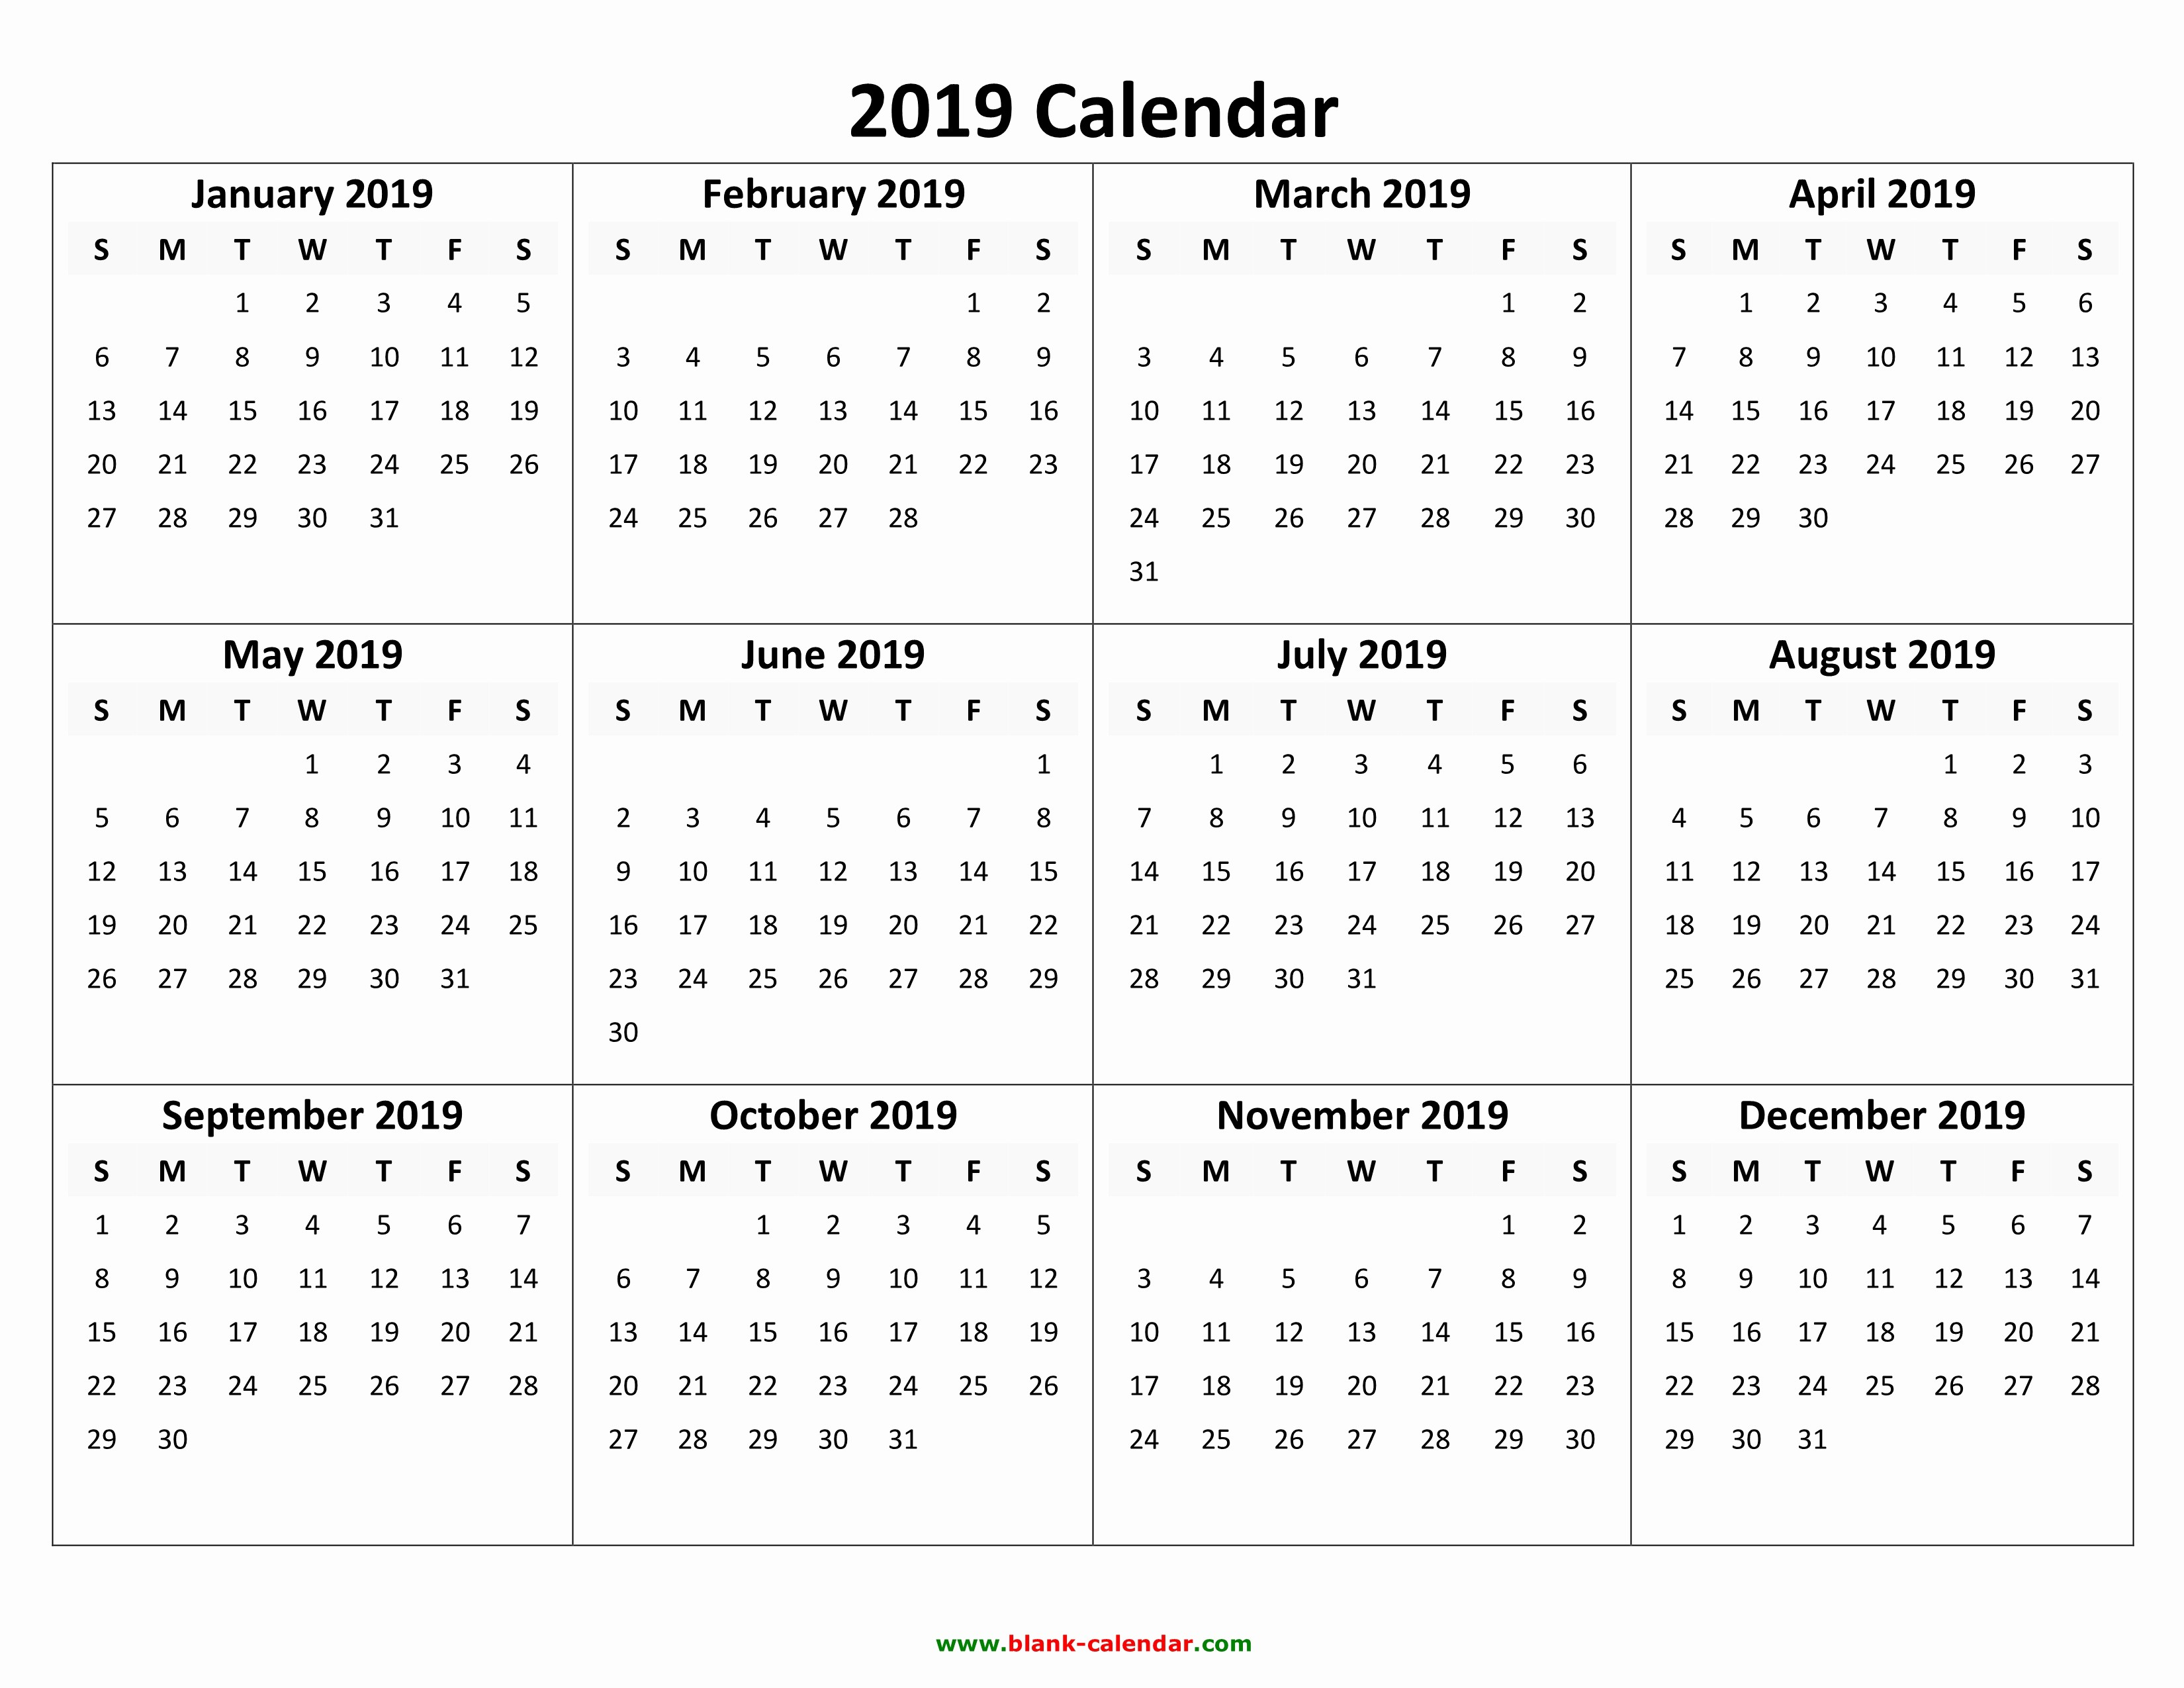 March Calendar 2019 Recientes Documenting Employee Behavior Template Beautiful Write Up at Work Of March Calendar 2019 Actual Gujarati Calendar 2019 Printable Printed for No Cost – Calendaro